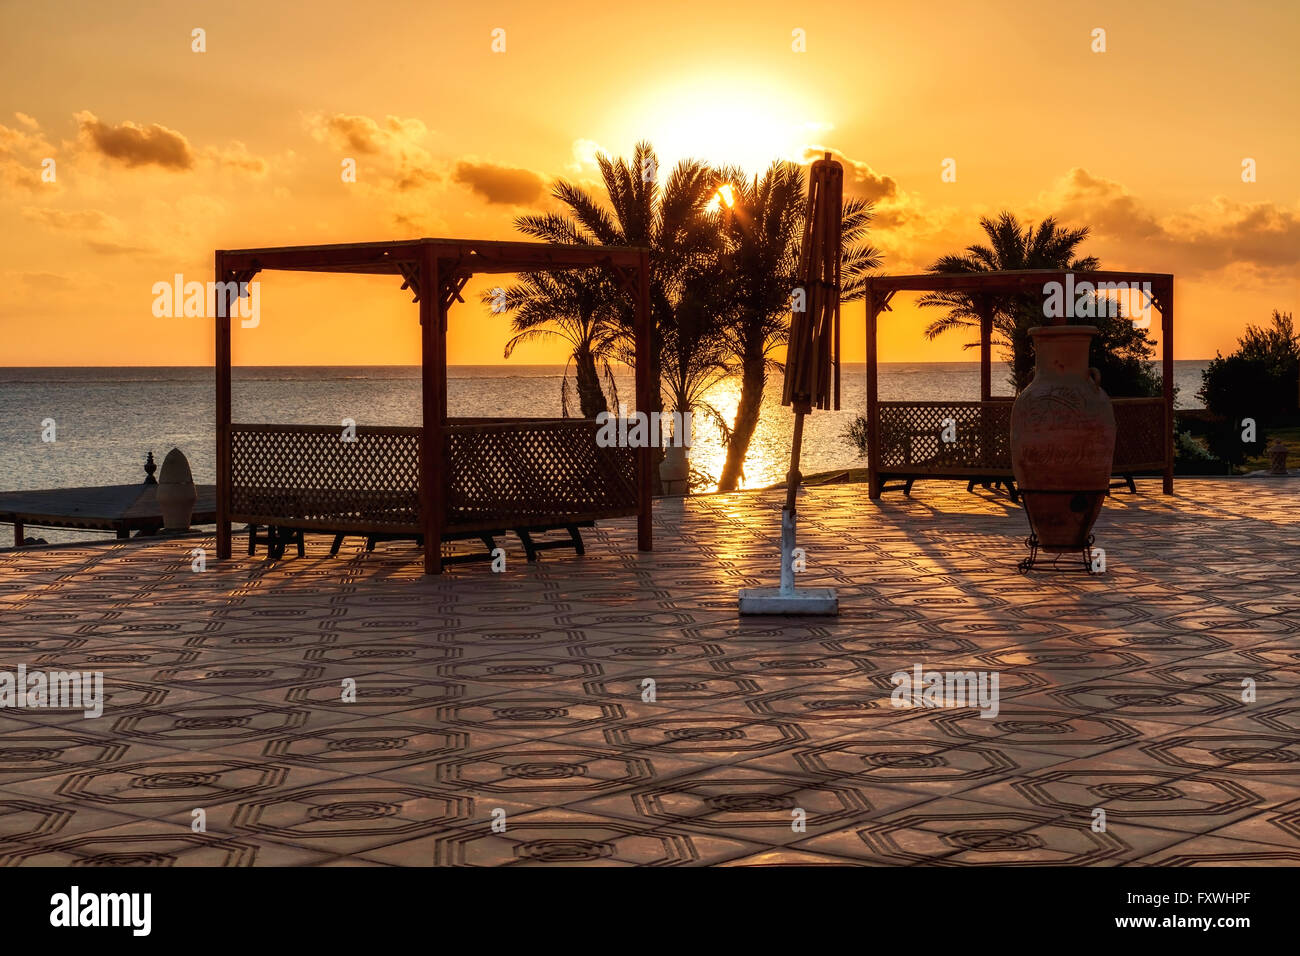 sunset in Marsa Alam, red sea, Egypt - Stock Image